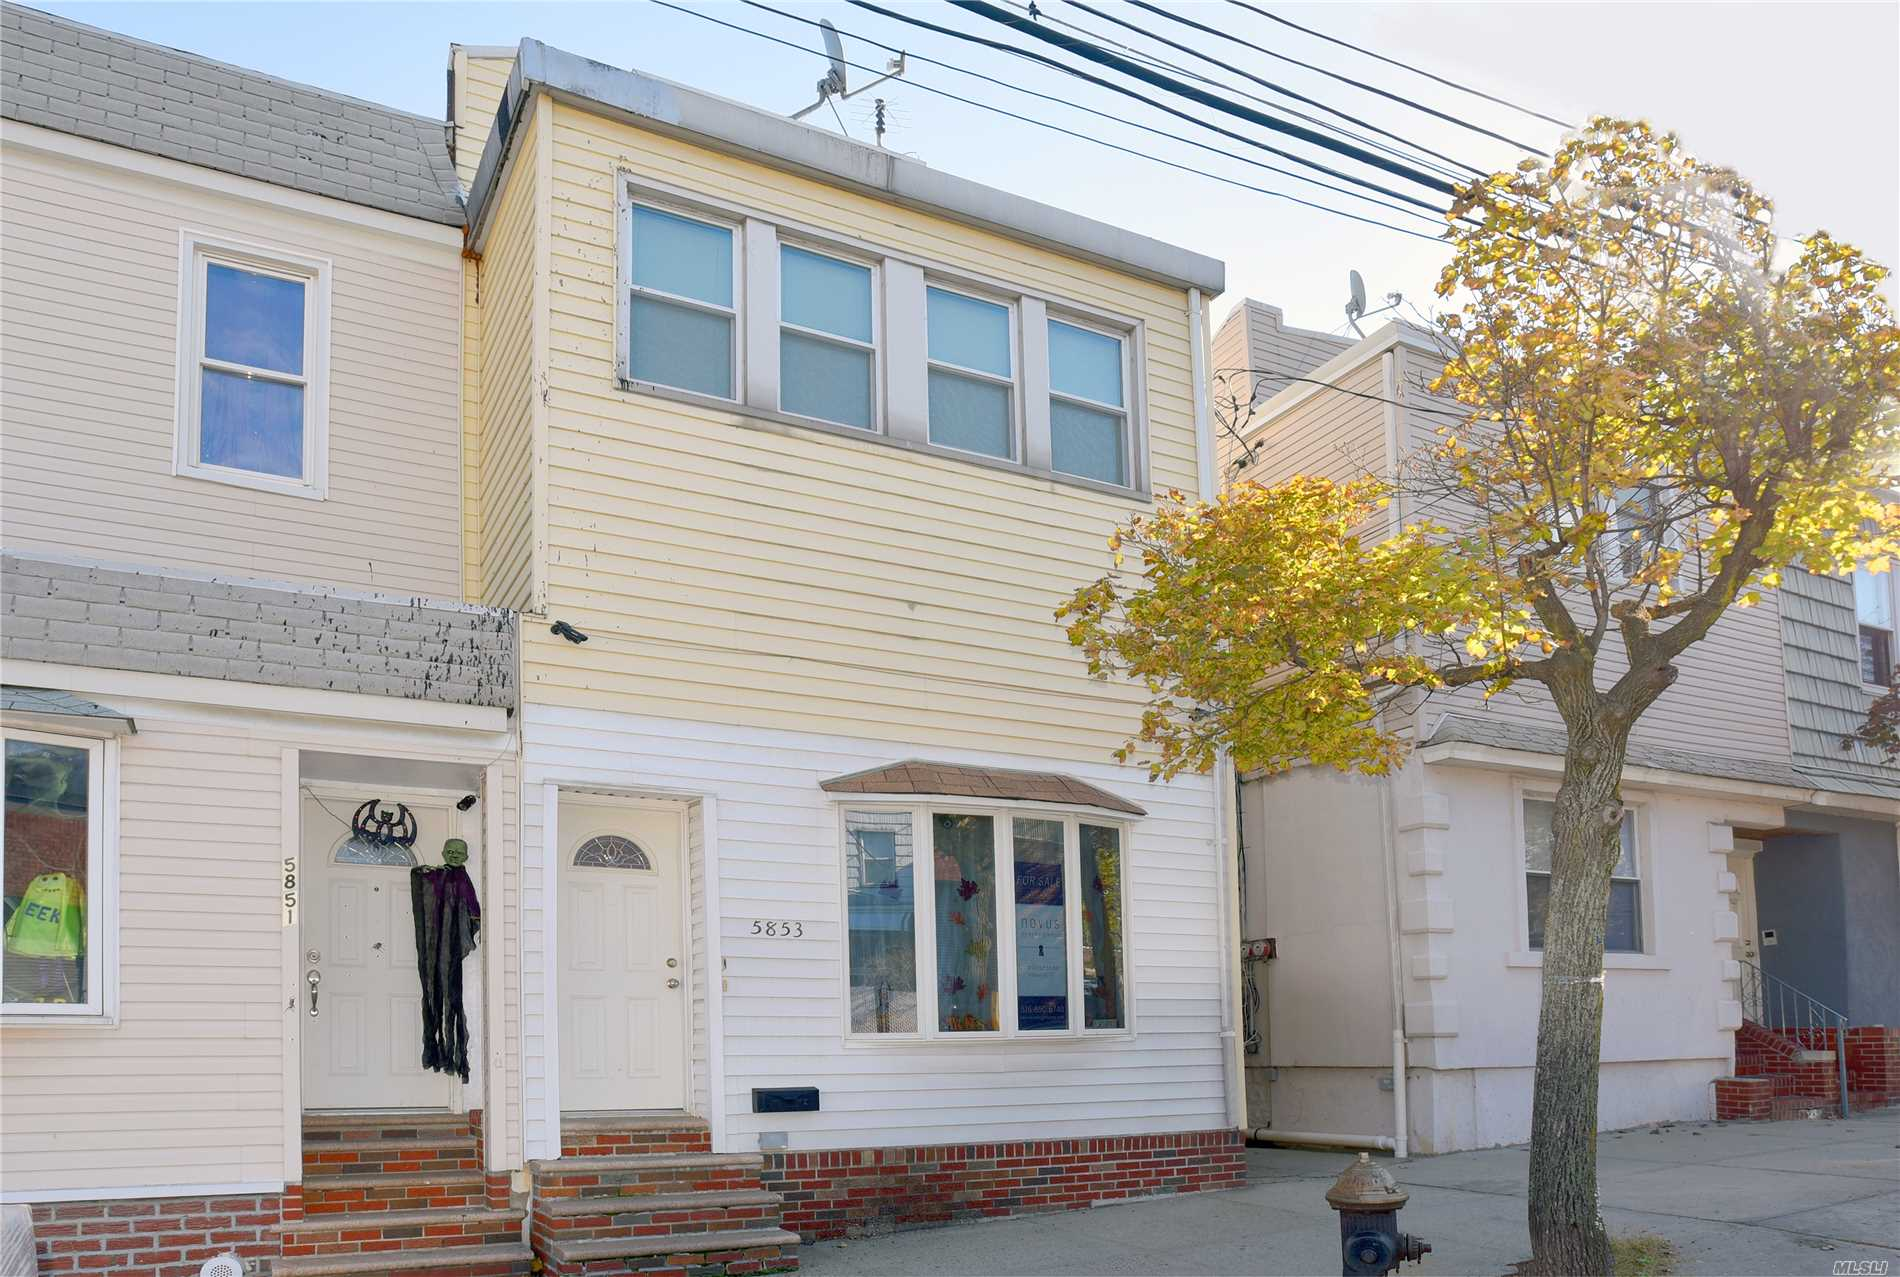 Pride Of Ownership Is Evident In This Welcoming Move In Condition 2 Family Home In Maspeth. 2 Bedrooms Over 1 Large Bedroom. Updated Kitchens And Baths, Finished Full Basement. New Windows, High Ceilings, Great Rear Outdoor Patio For Entertaining. Convenient To Schools, Houses Of Worship And Mass Transit.